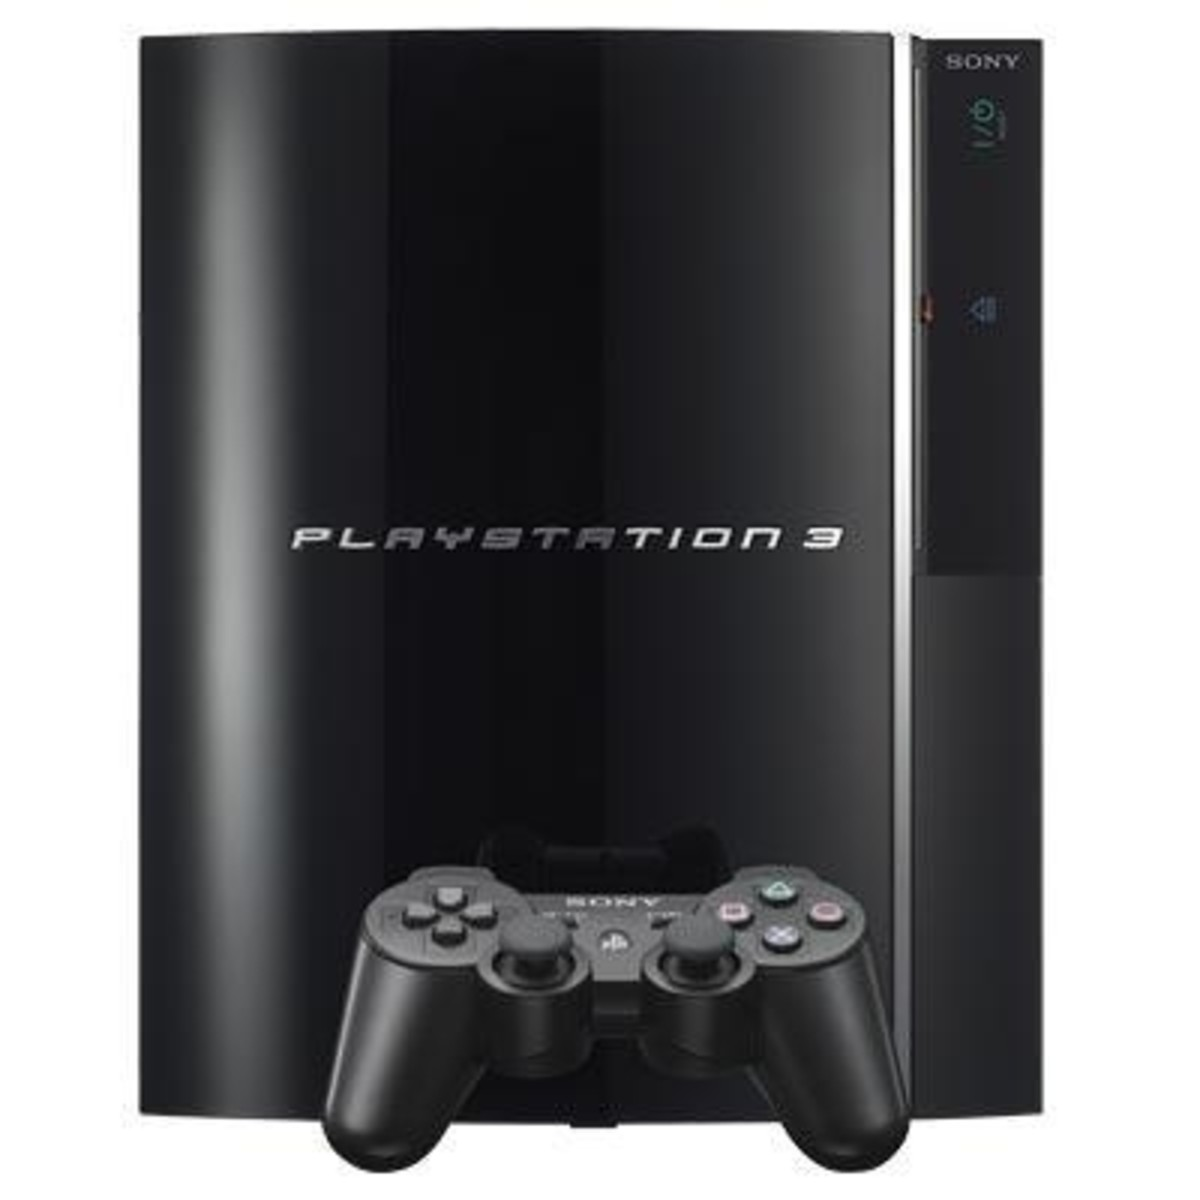 what-is-the-difference-between-ps3-models-playstation-3-models